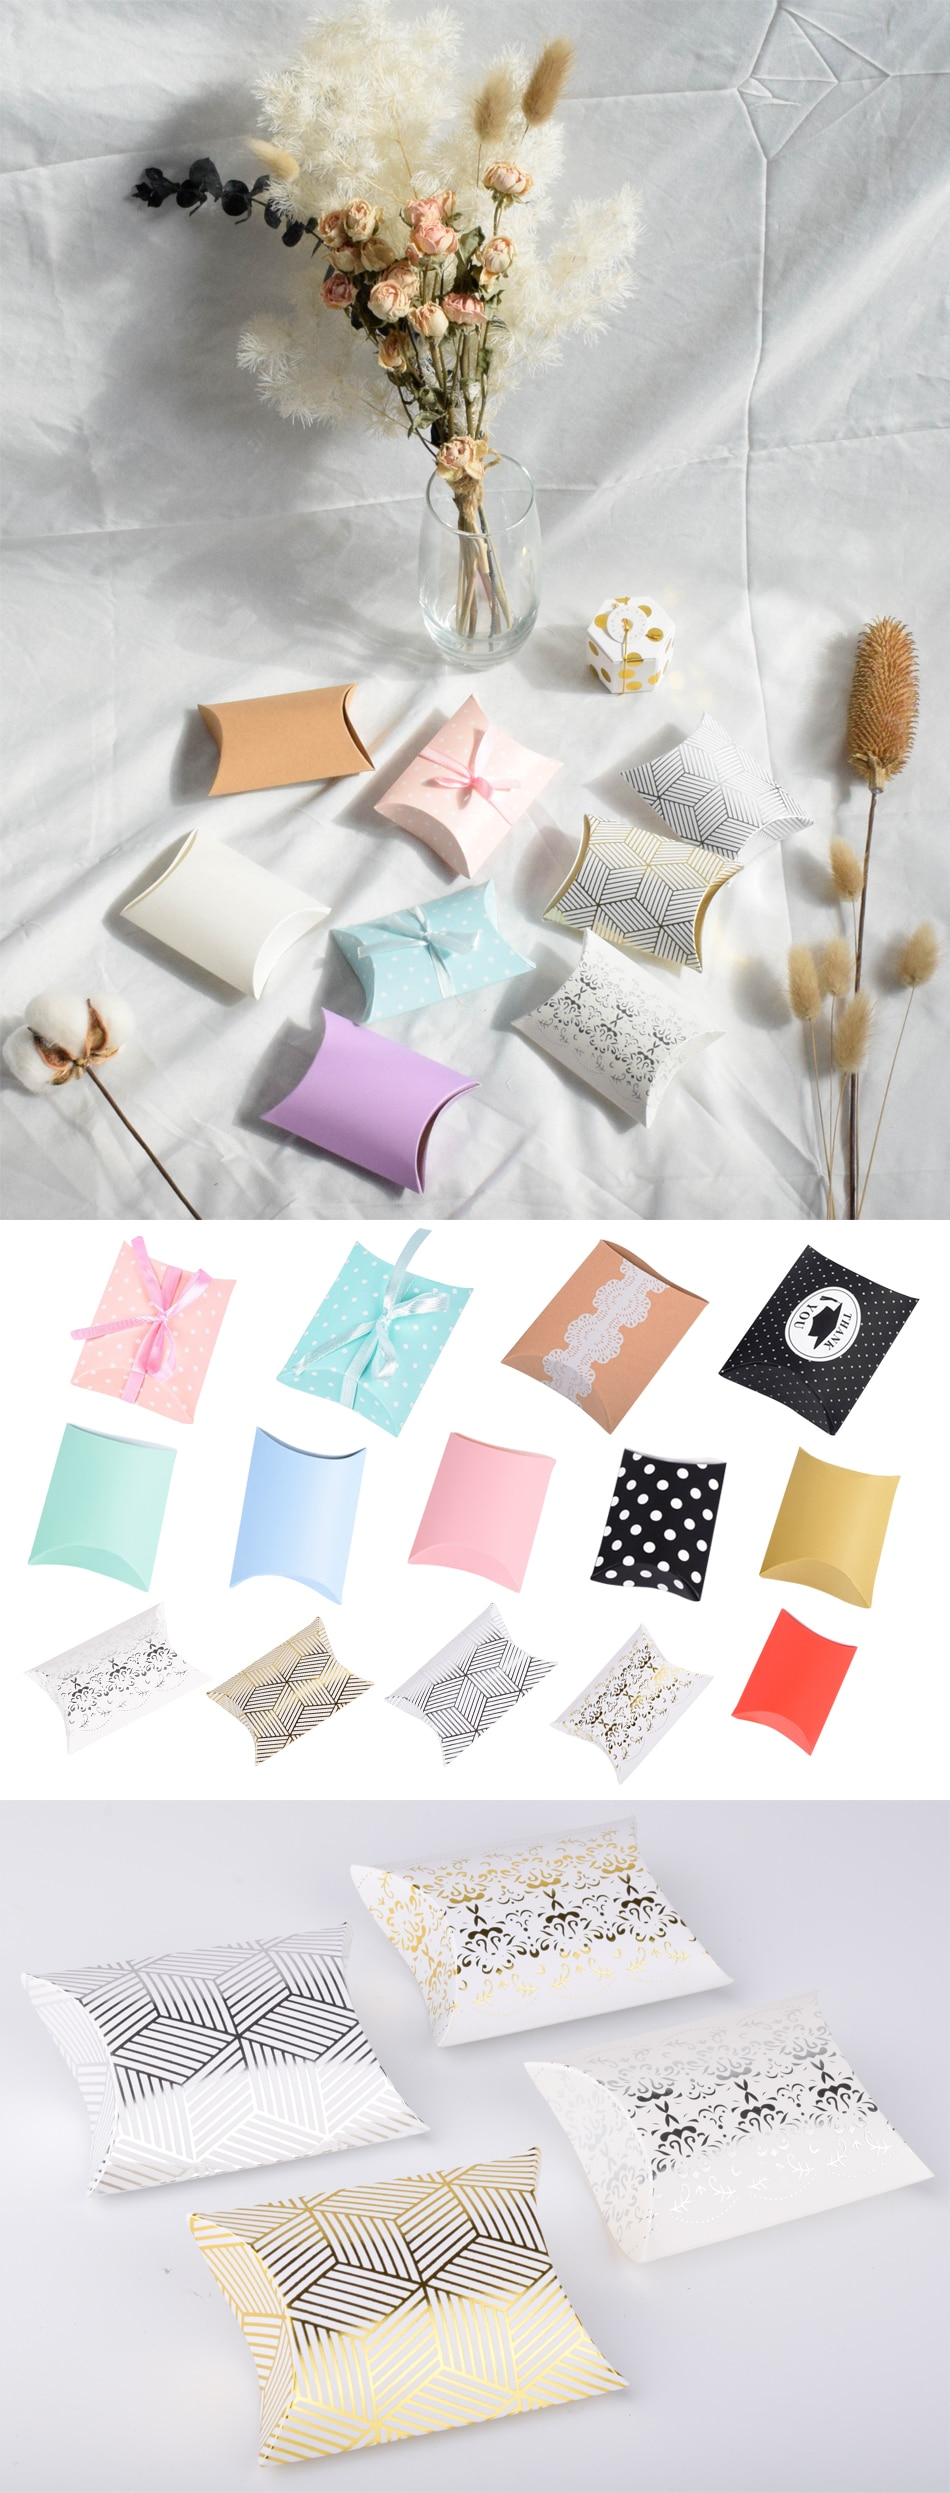 10pcs Candy Box Bag New Craft Paper Pillow Shape Wedding Favor Gift Boxes Pie Party Bags Eco Friendly Kraft Packaging Promotion